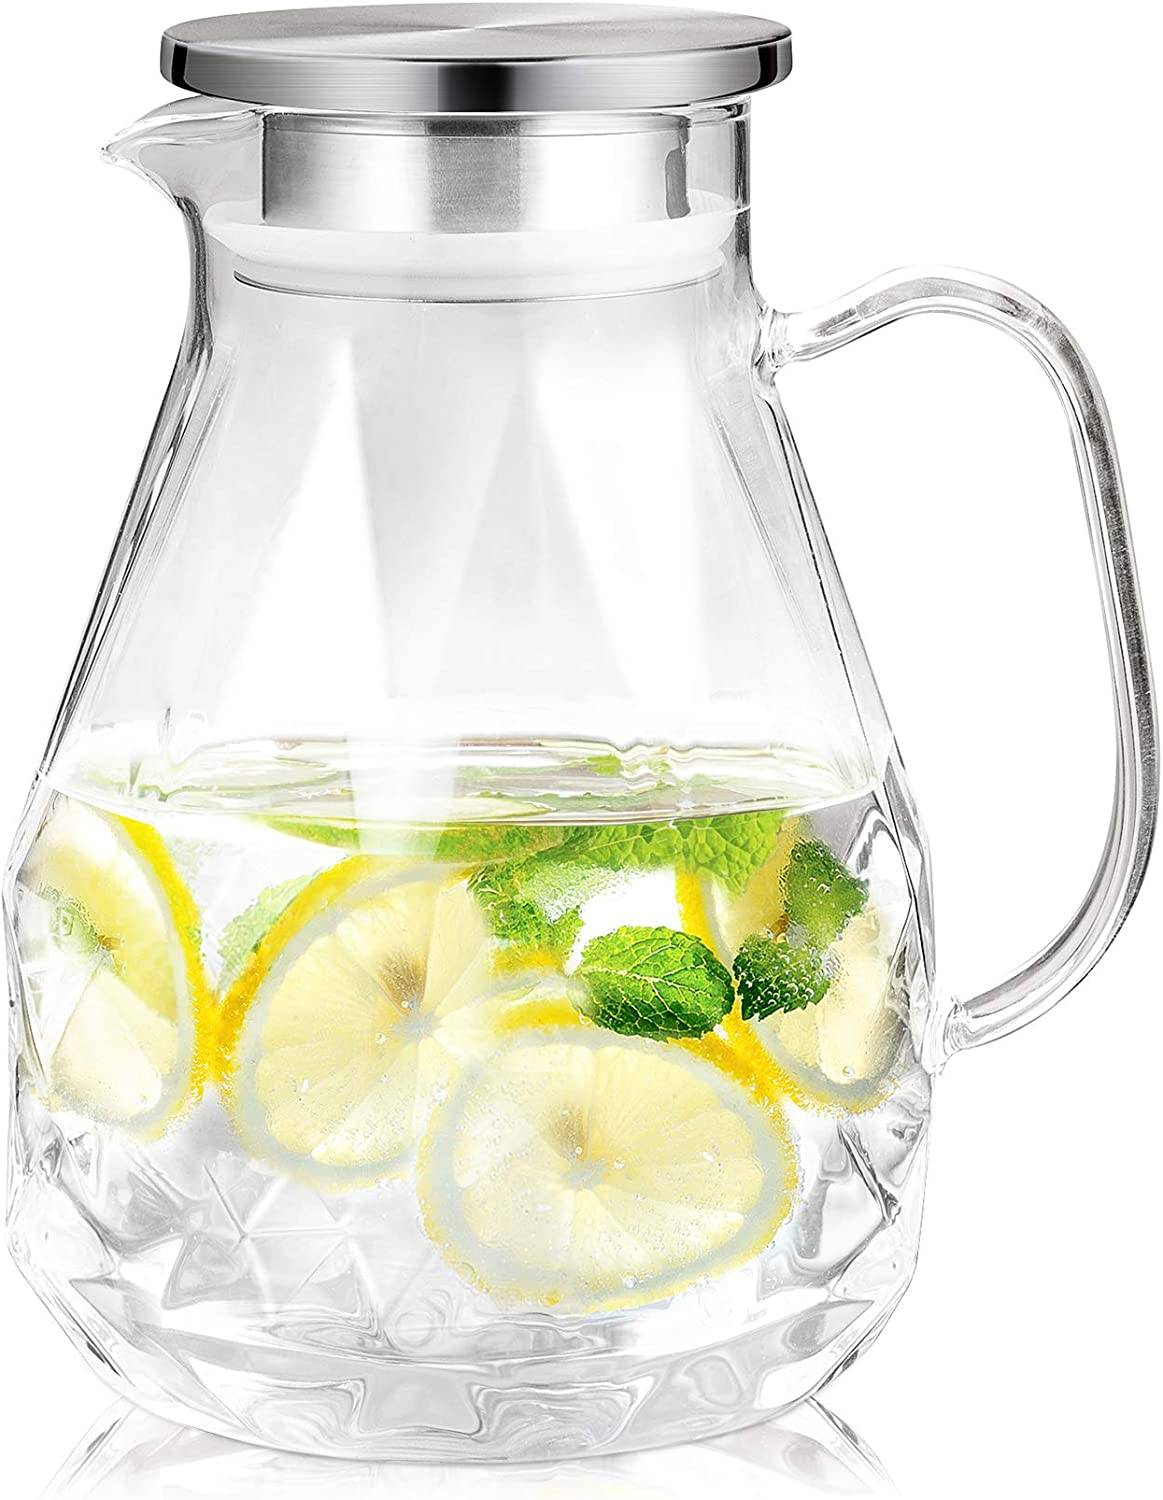 Four Spring 60 Ounces Glass Pitcher with Stainless Steel Lid, Water Jug with Unique Diamond Pattern, Carafe for Homemade Beverages